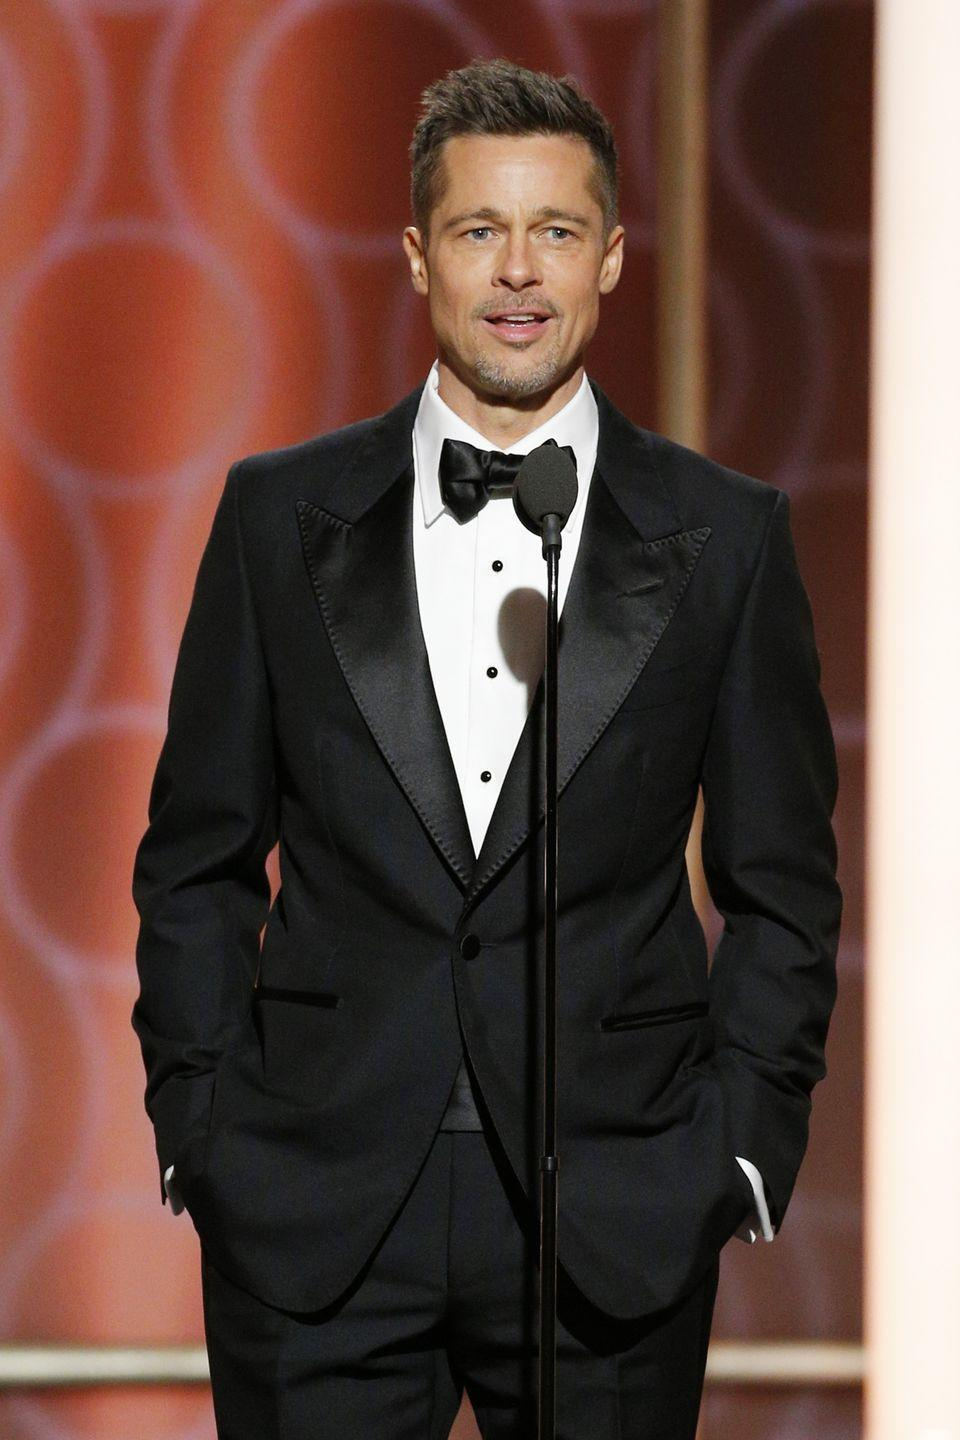 """<p><strong>Born</strong>: William Bradley Pitt</p><p>Despite going by his middle name in his professional life, <em><a href=""""https://pagesix.com/2018/01/02/brad-pitt-uses-his-real-name-when-flirting/"""" rel=""""nofollow noopener"""" target=""""_blank"""" data-ylk=""""slk:Page Six"""" class=""""link rapid-noclick-resp"""">Page Six</a></em> reports that the newly-single actor introduces himself by his given name, William, when he's flirting with women. We're guessing any woman would see right through Pitt's not-so-pseudonym.</p>"""